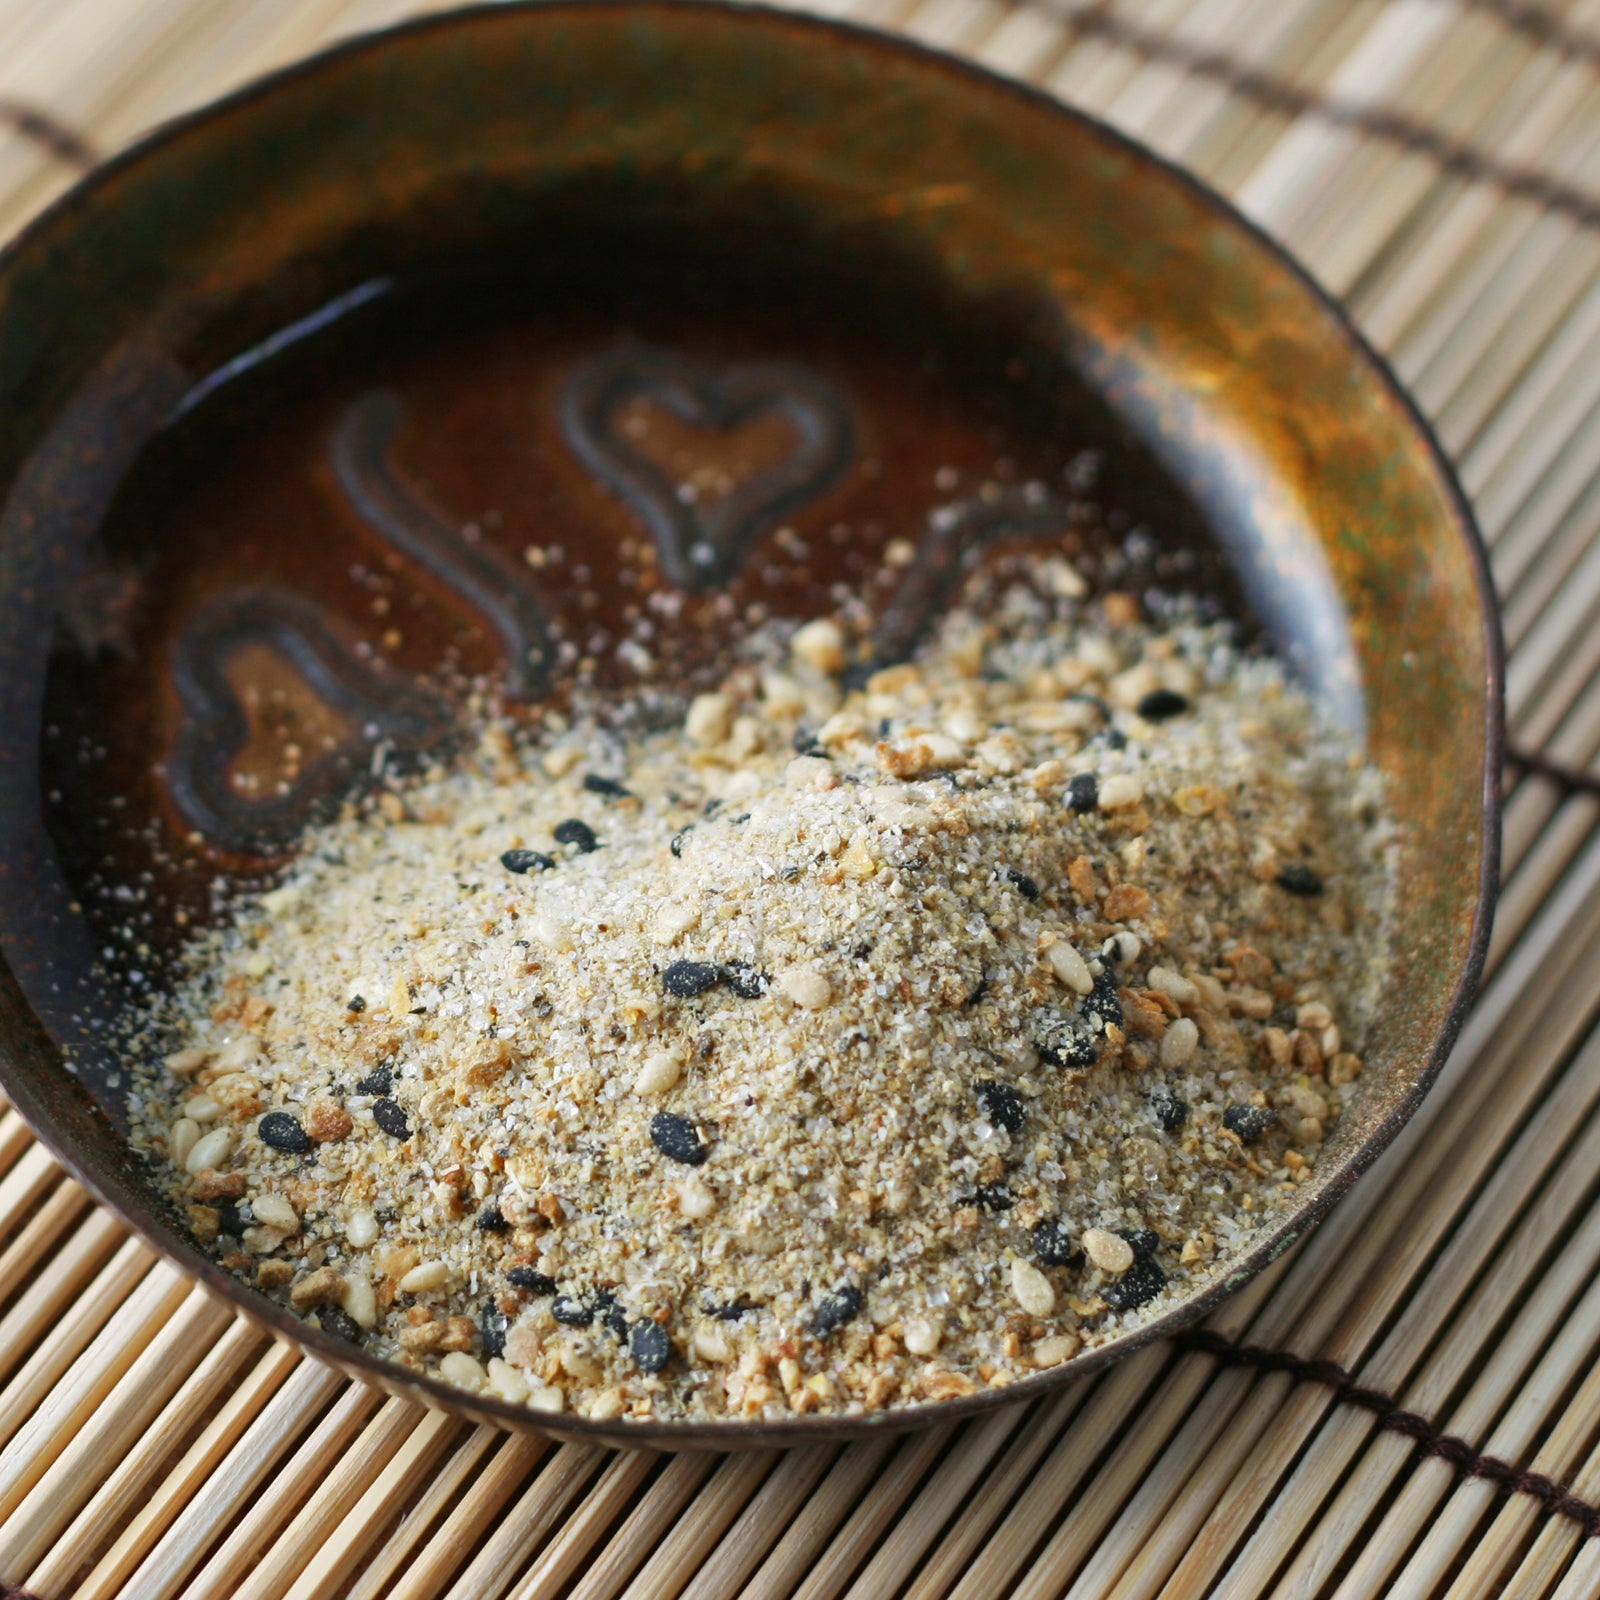 Ginger-Sesame Seasoning